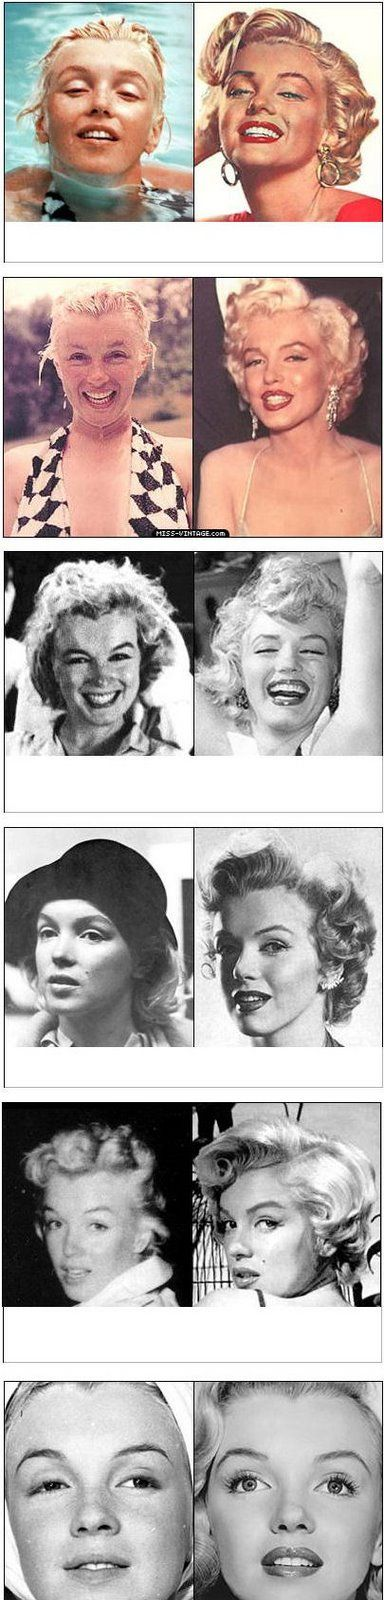 ❤Marilyn Monroe ~*❥*~❤  without makeup. She was still beautiful.